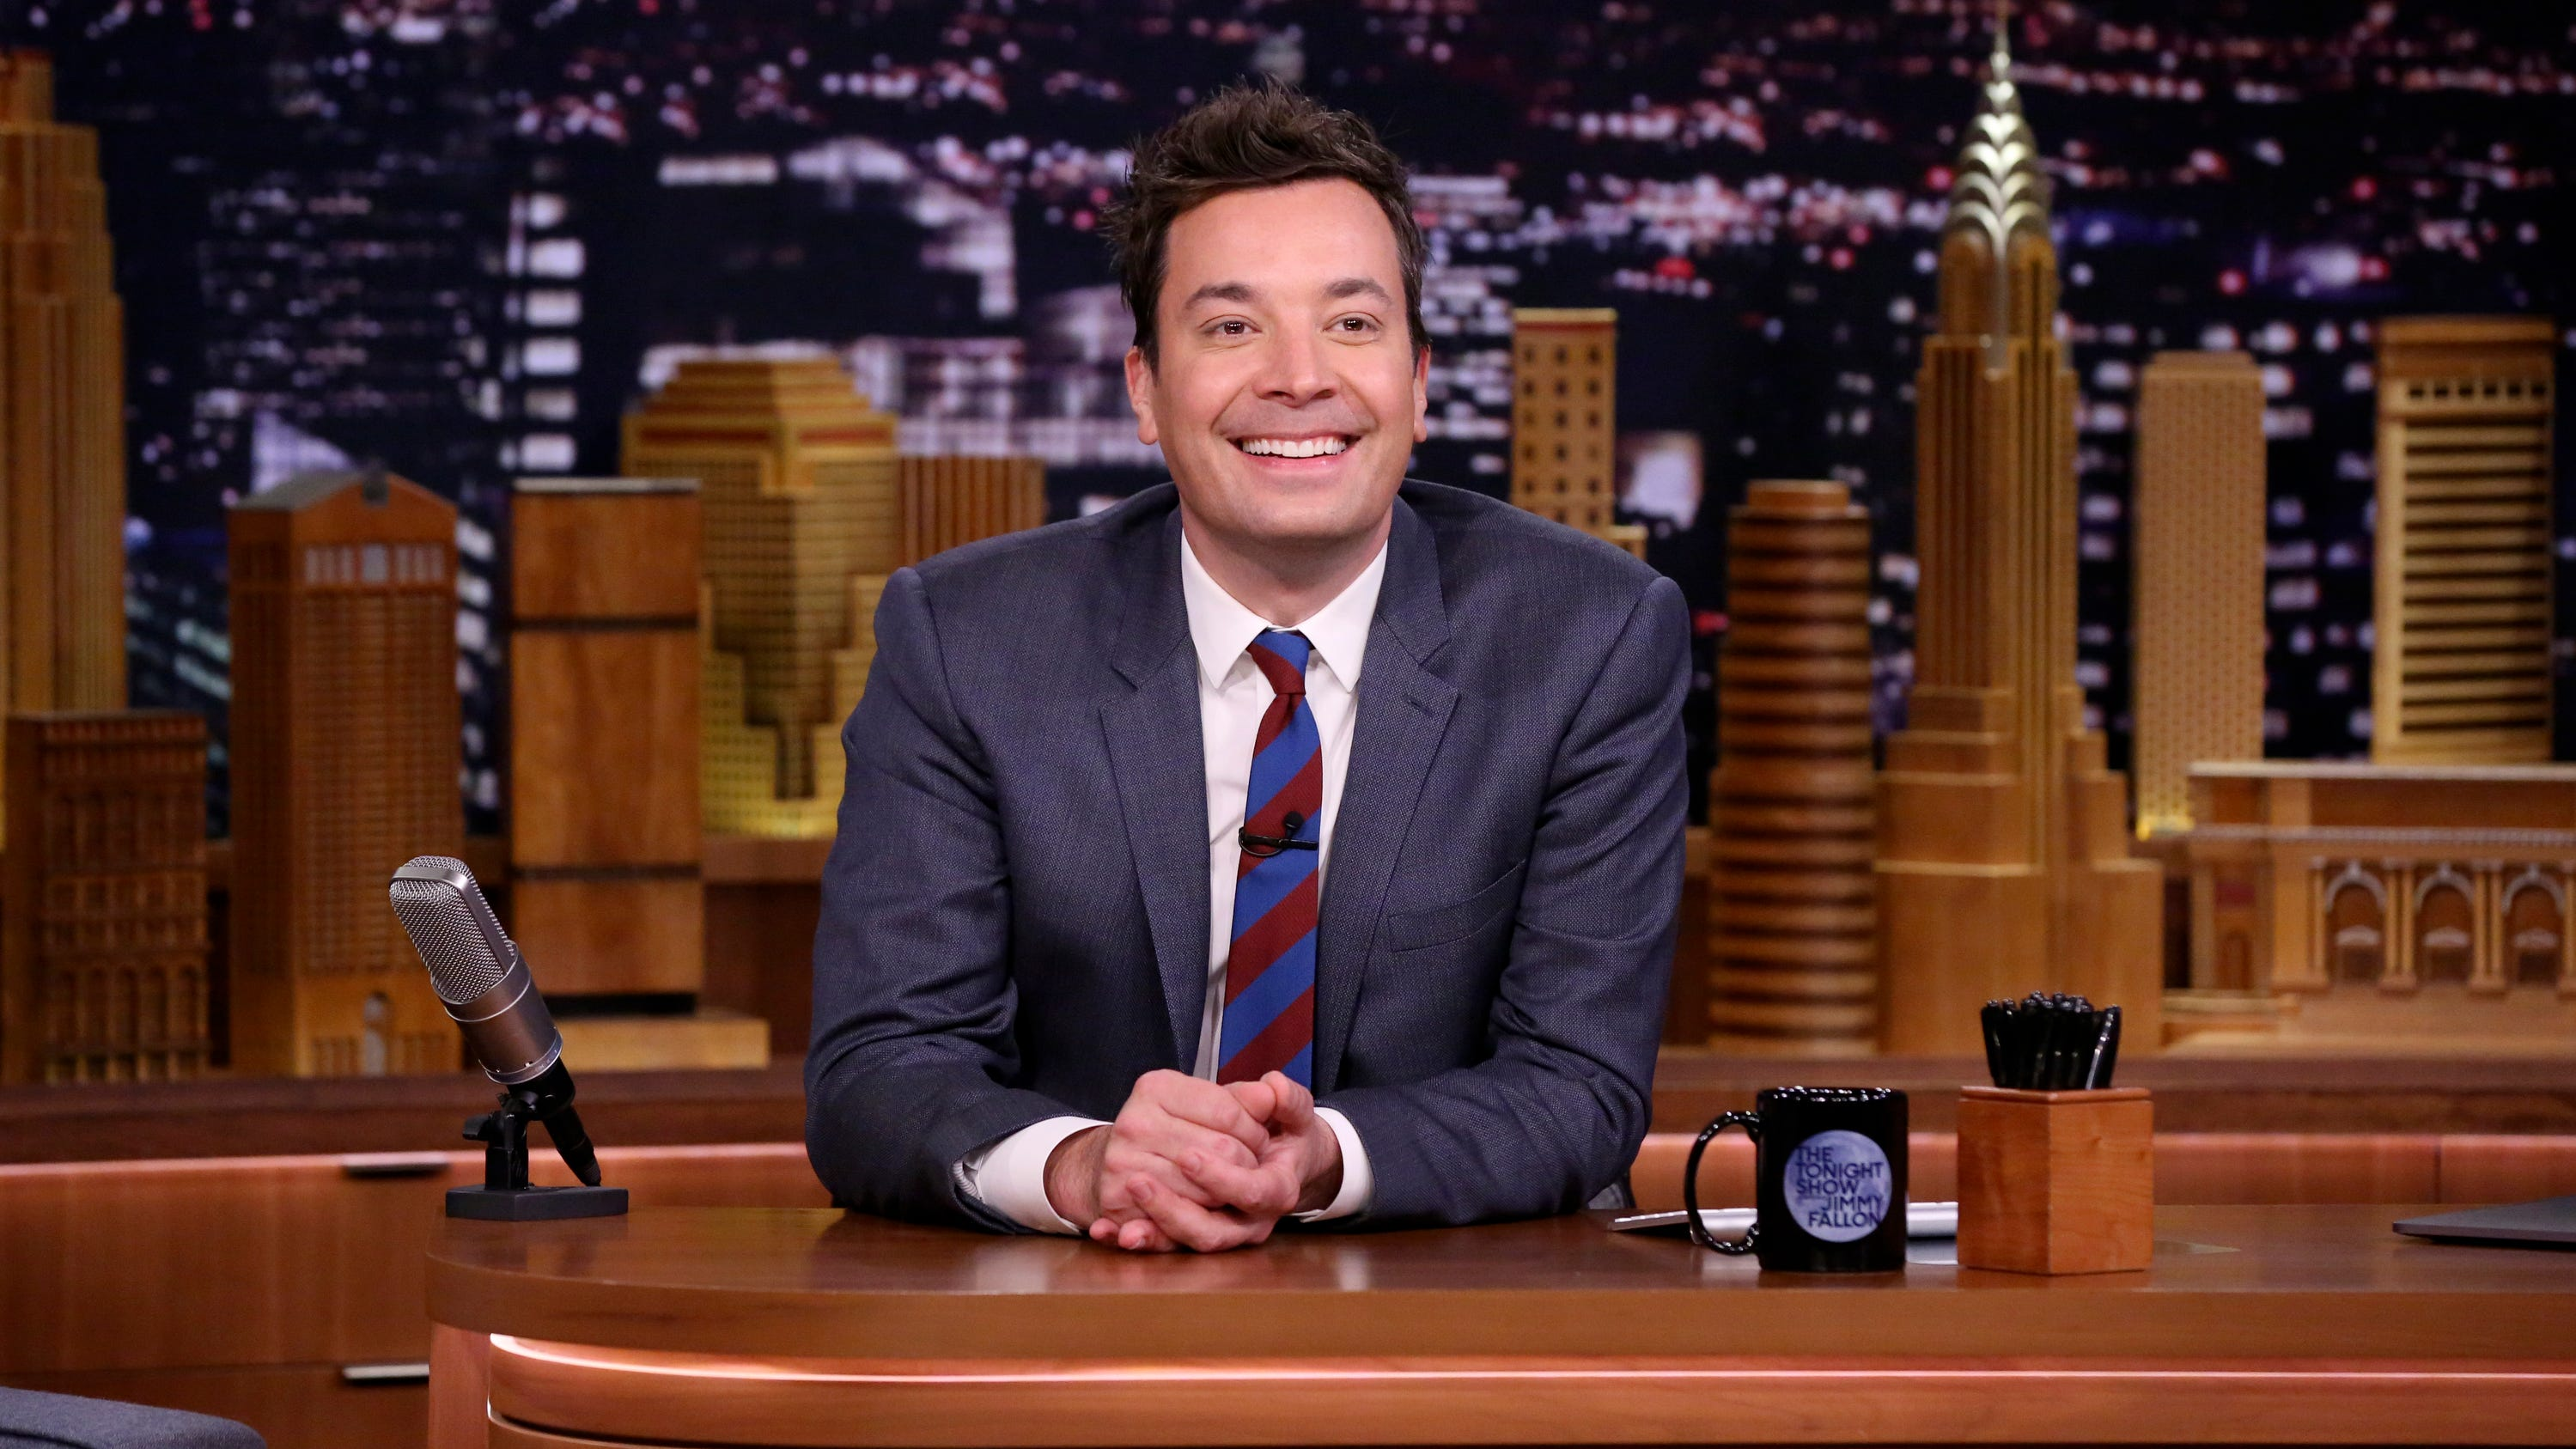 Fallon reveals Nike's new slogan in Best of Late Night